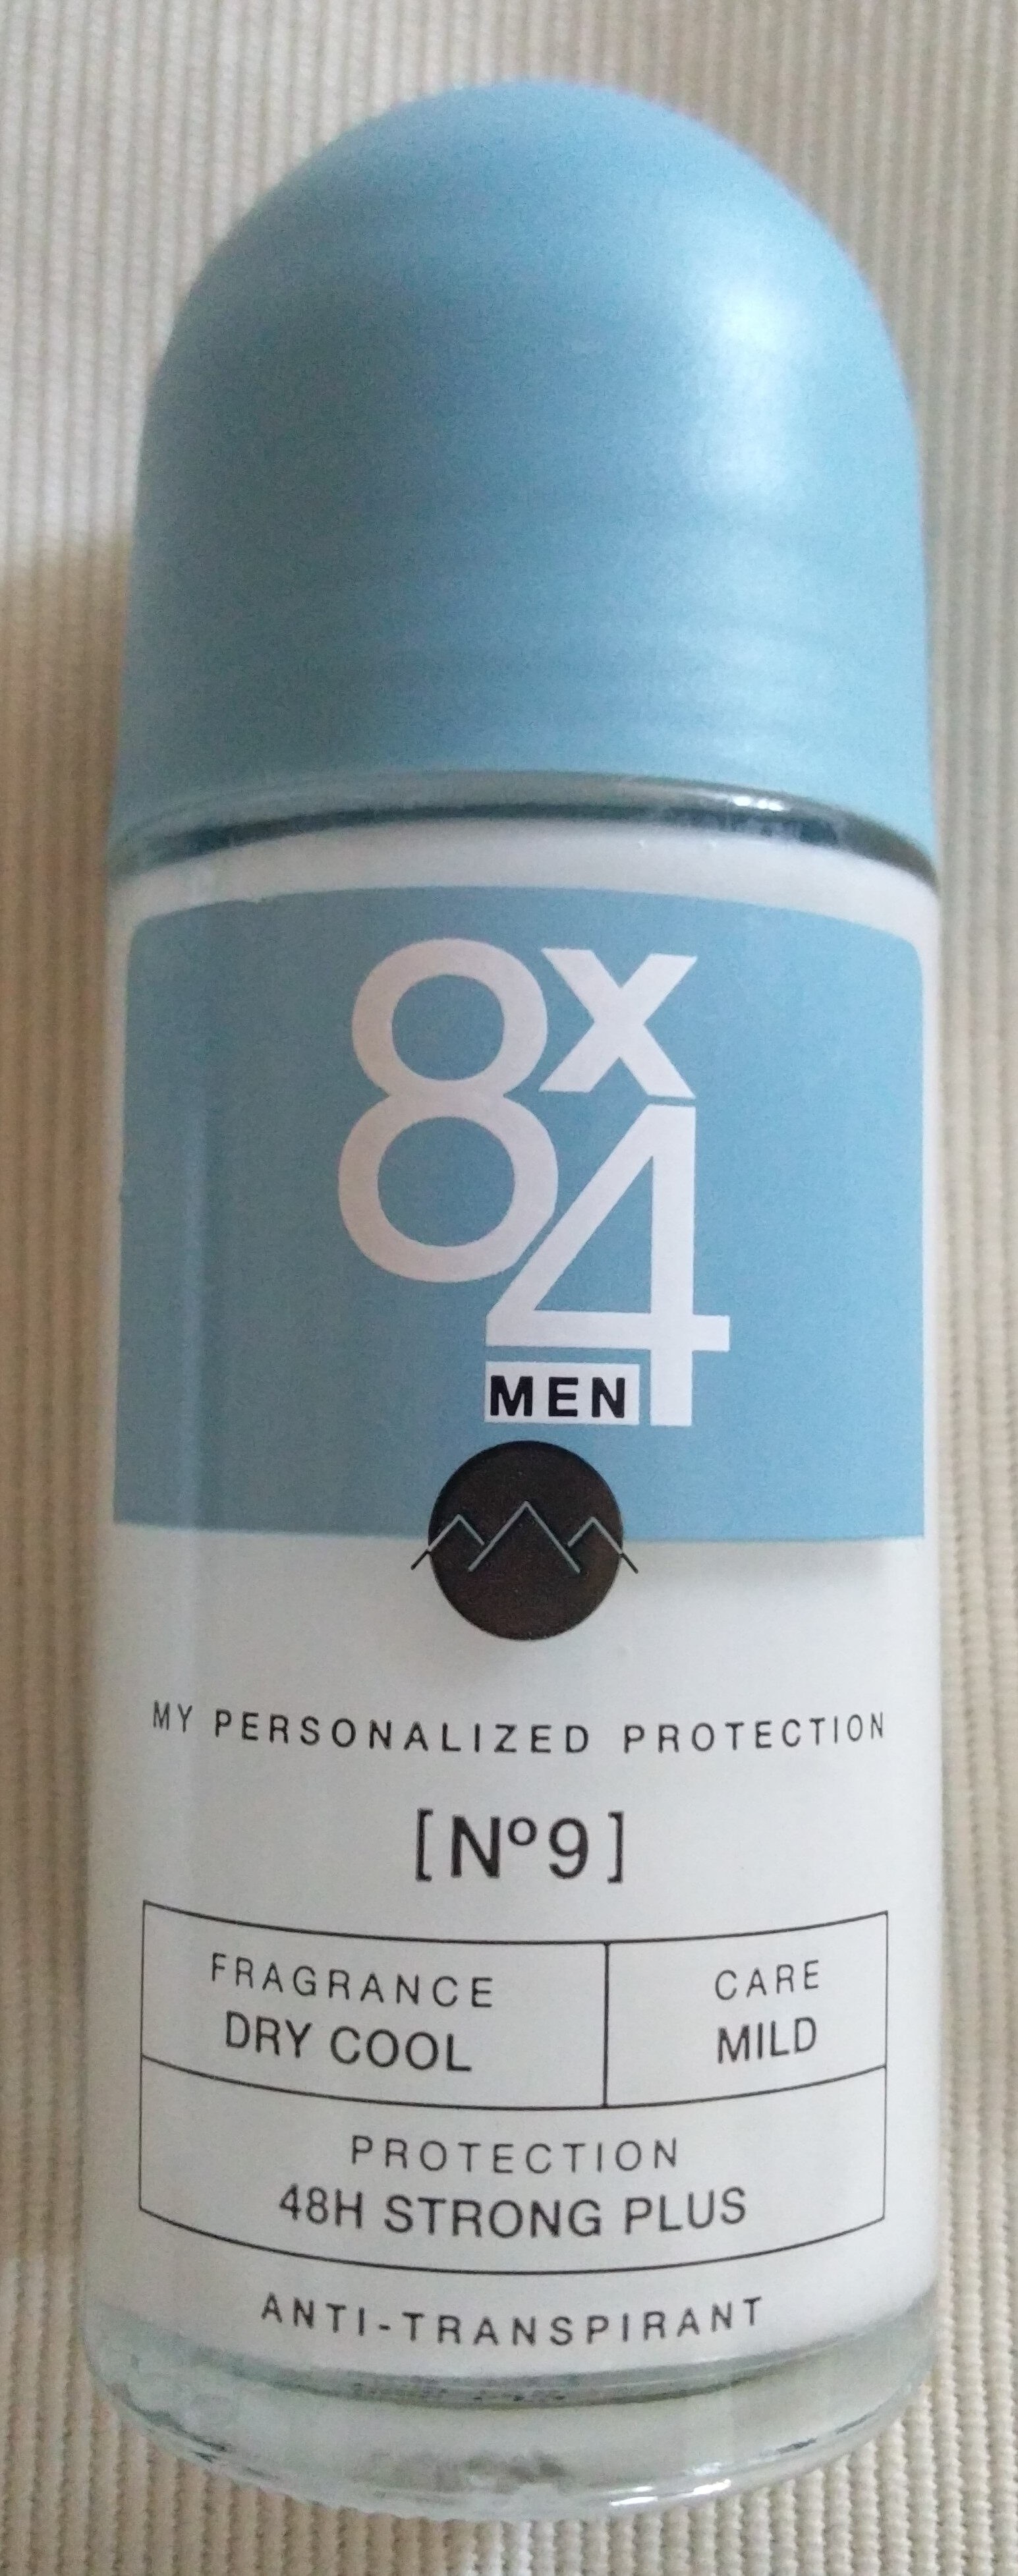 Anti-Transpirant: My Personalized Protection [No. 9] - Продукт - de